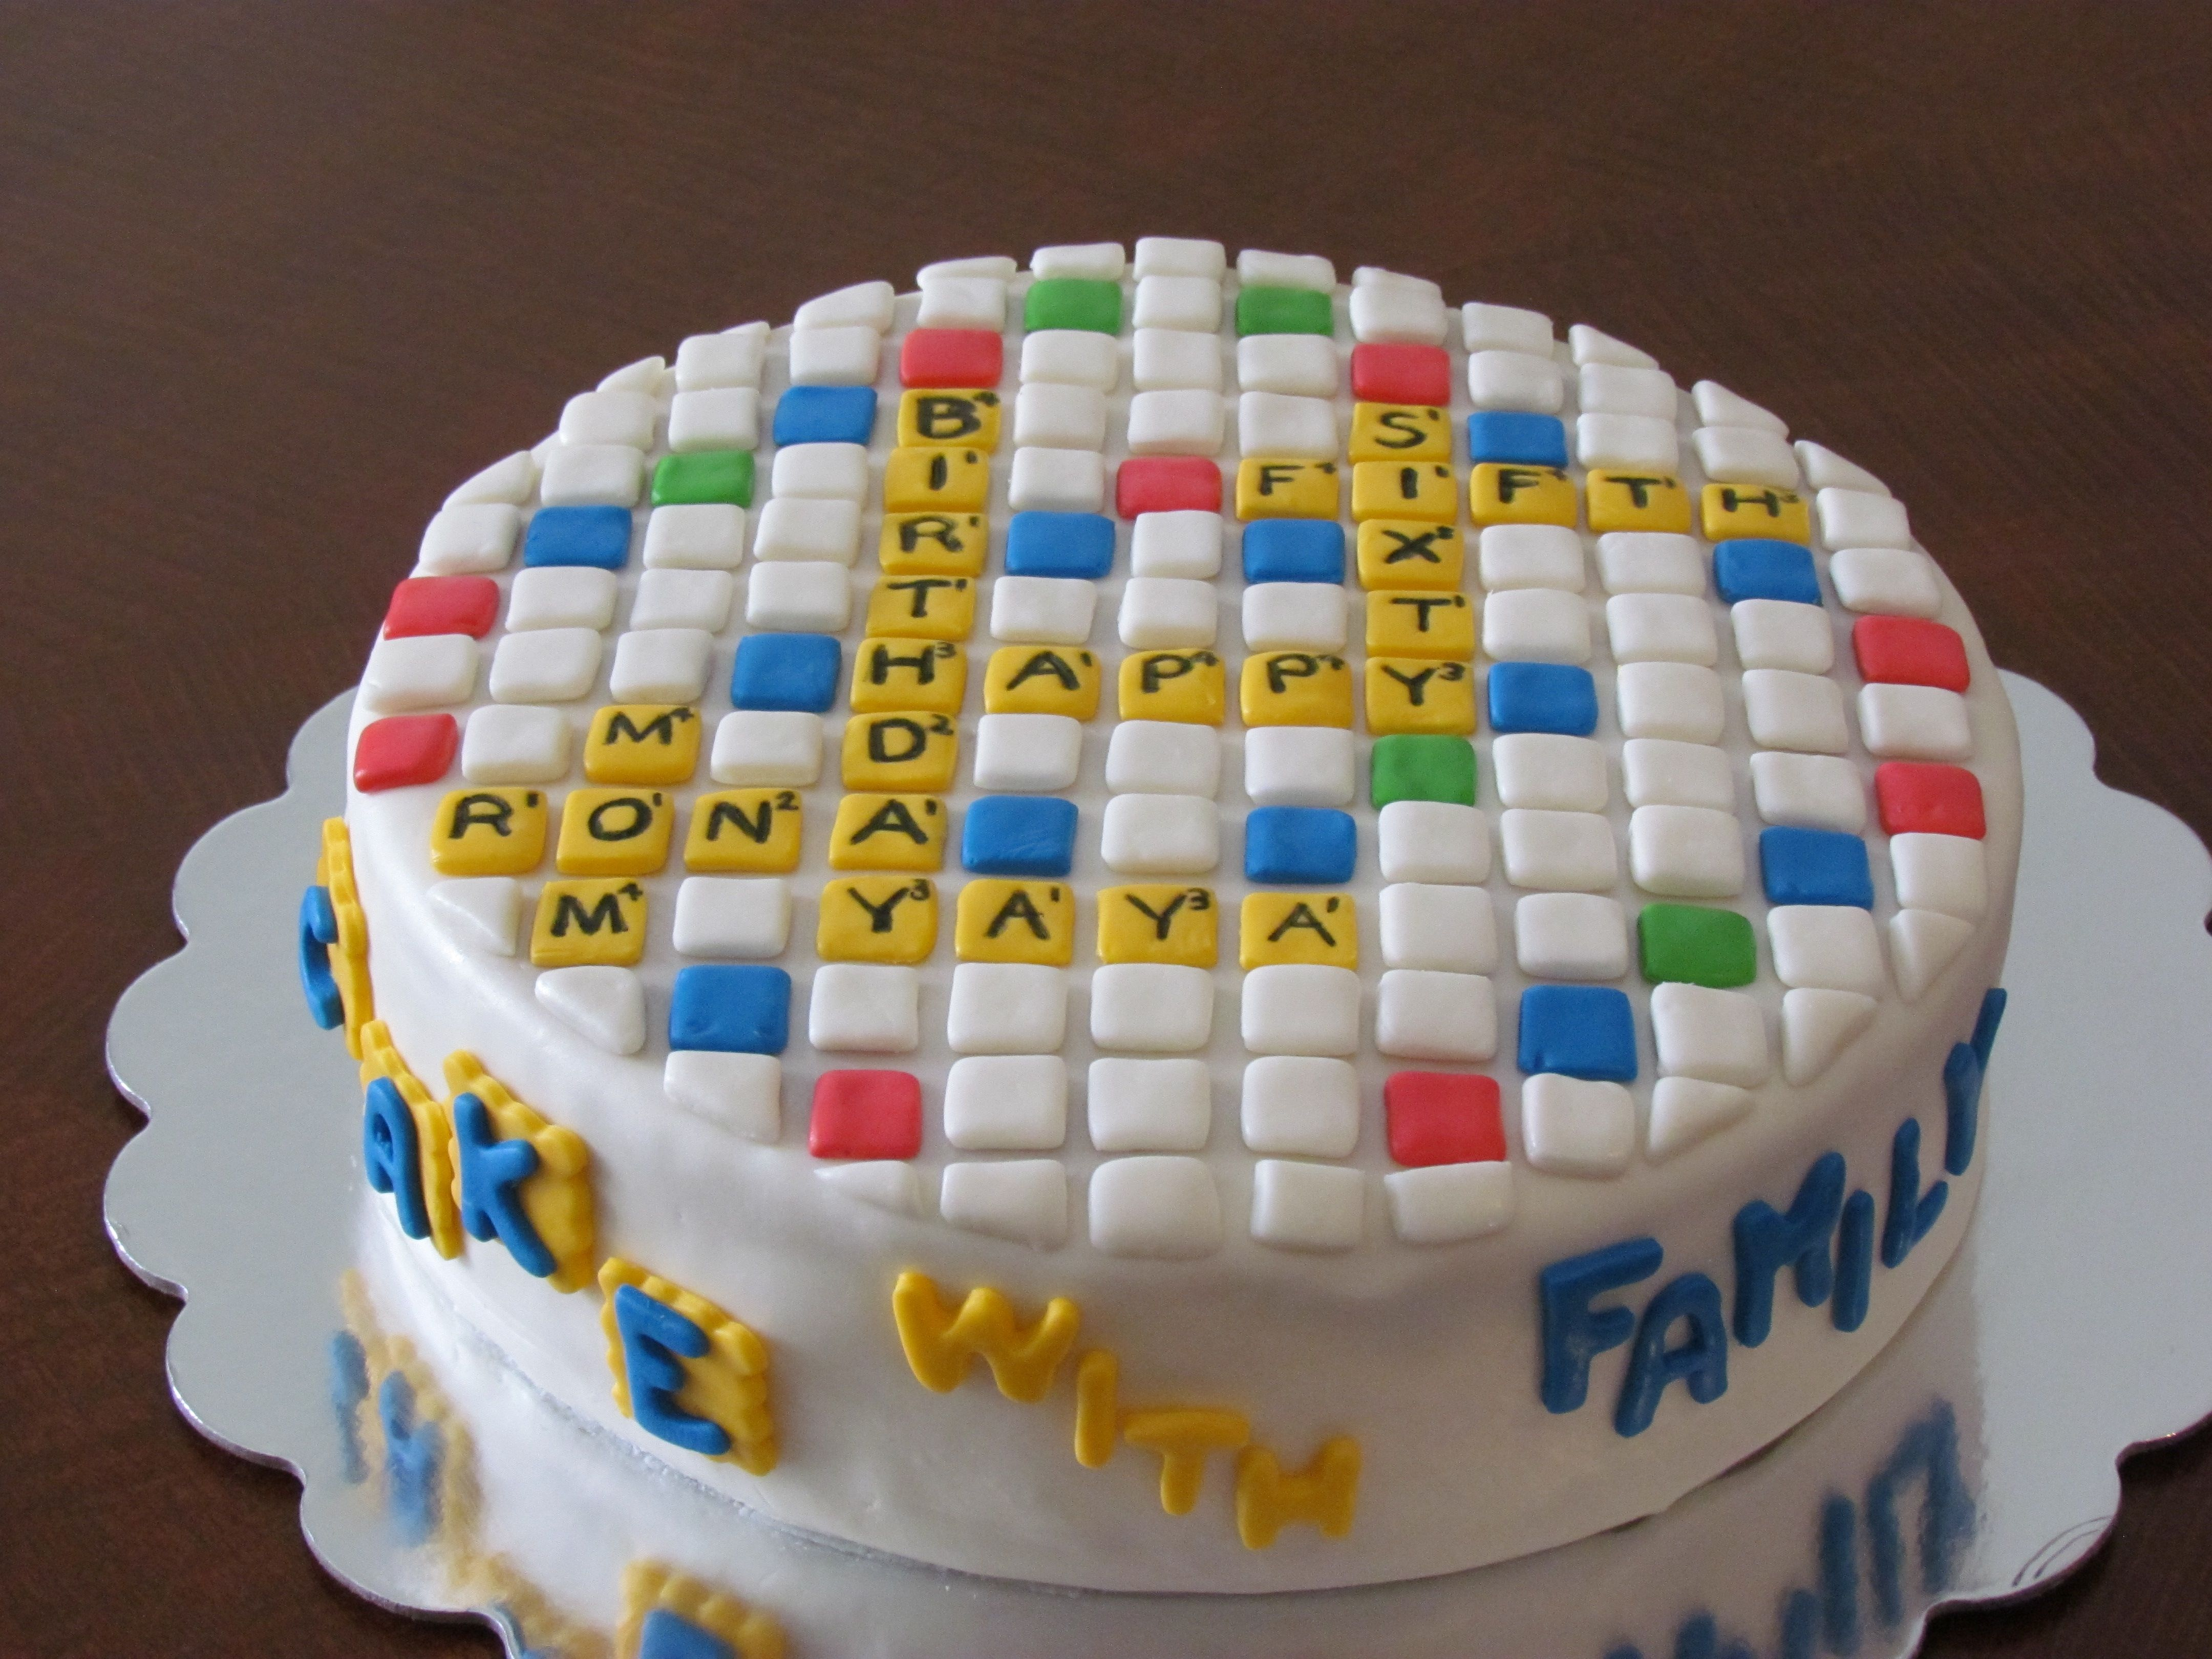 Air force cake decorations home furniture decors creating the - Words With Friends Birthday Cake I Made This For My Mom S Birthday She Loves Playing Words With Friends The Front Says Cake With Family All Fondant